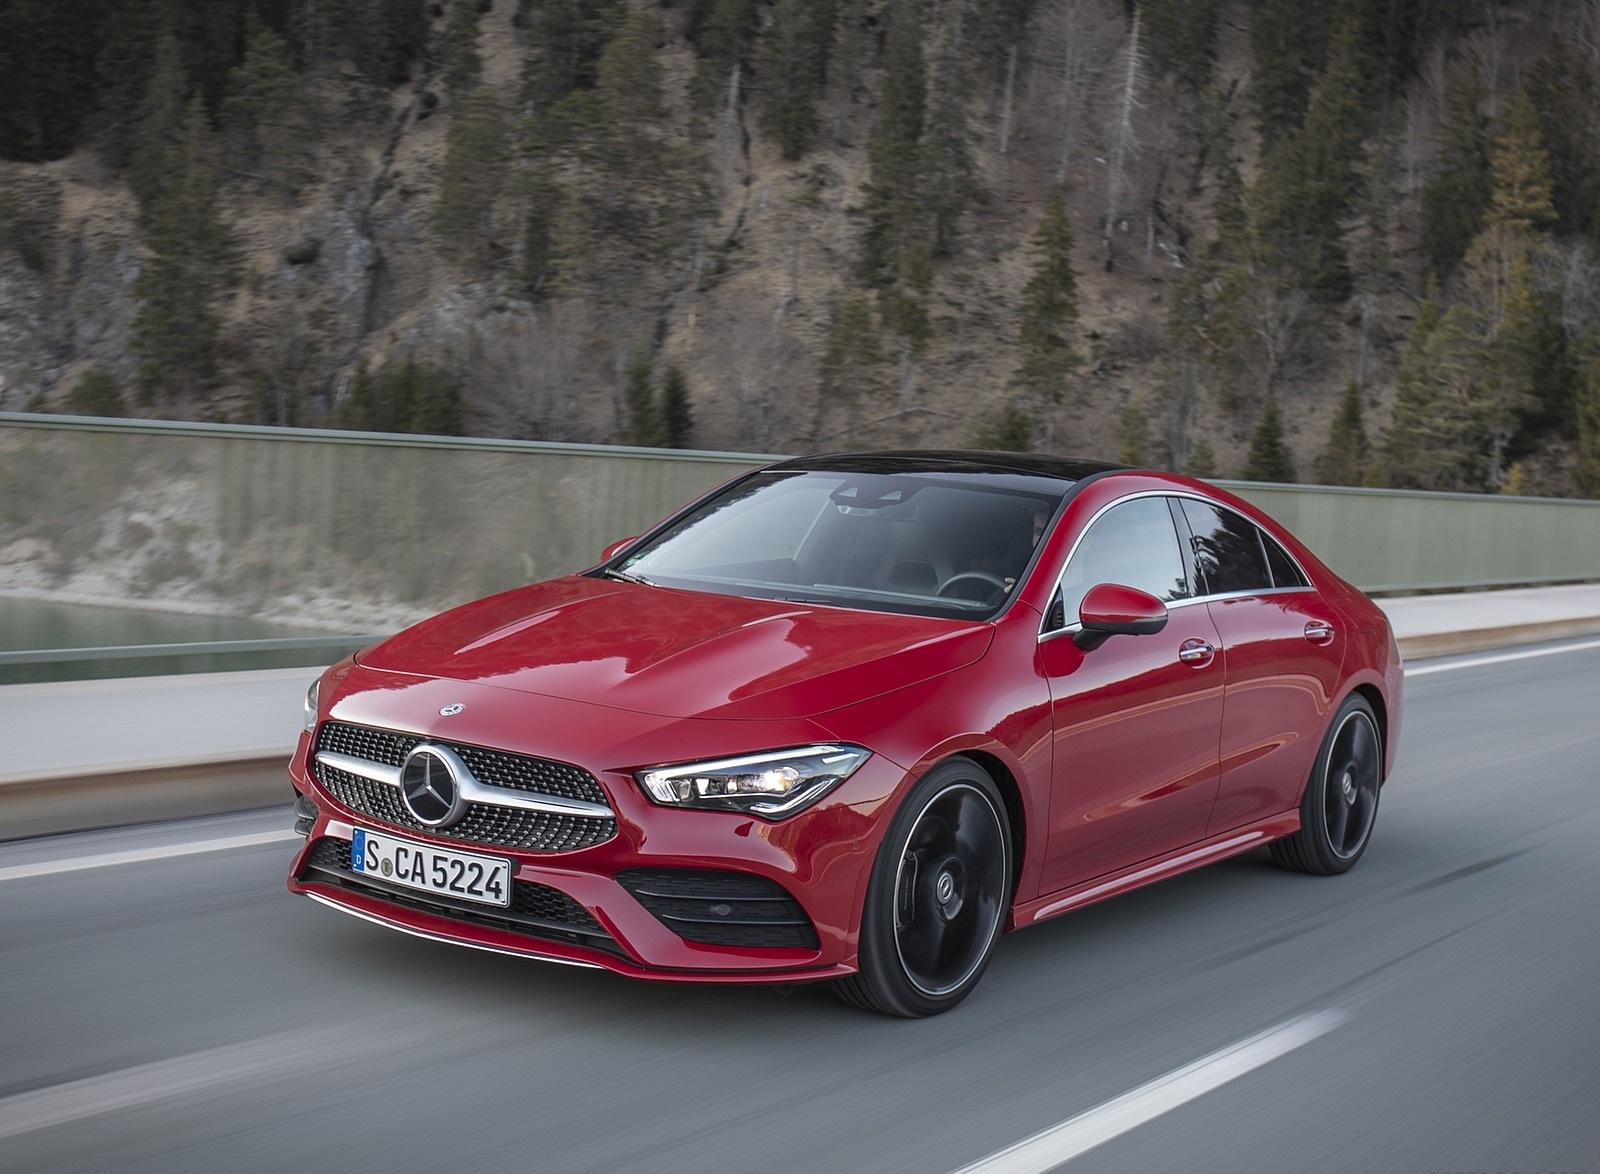 2020 Mercedes-Benz CLA 250 4MATIC Coupe AMG Line (Color: Jupiter Red) Front Three-Quarter Wallpapers (1)